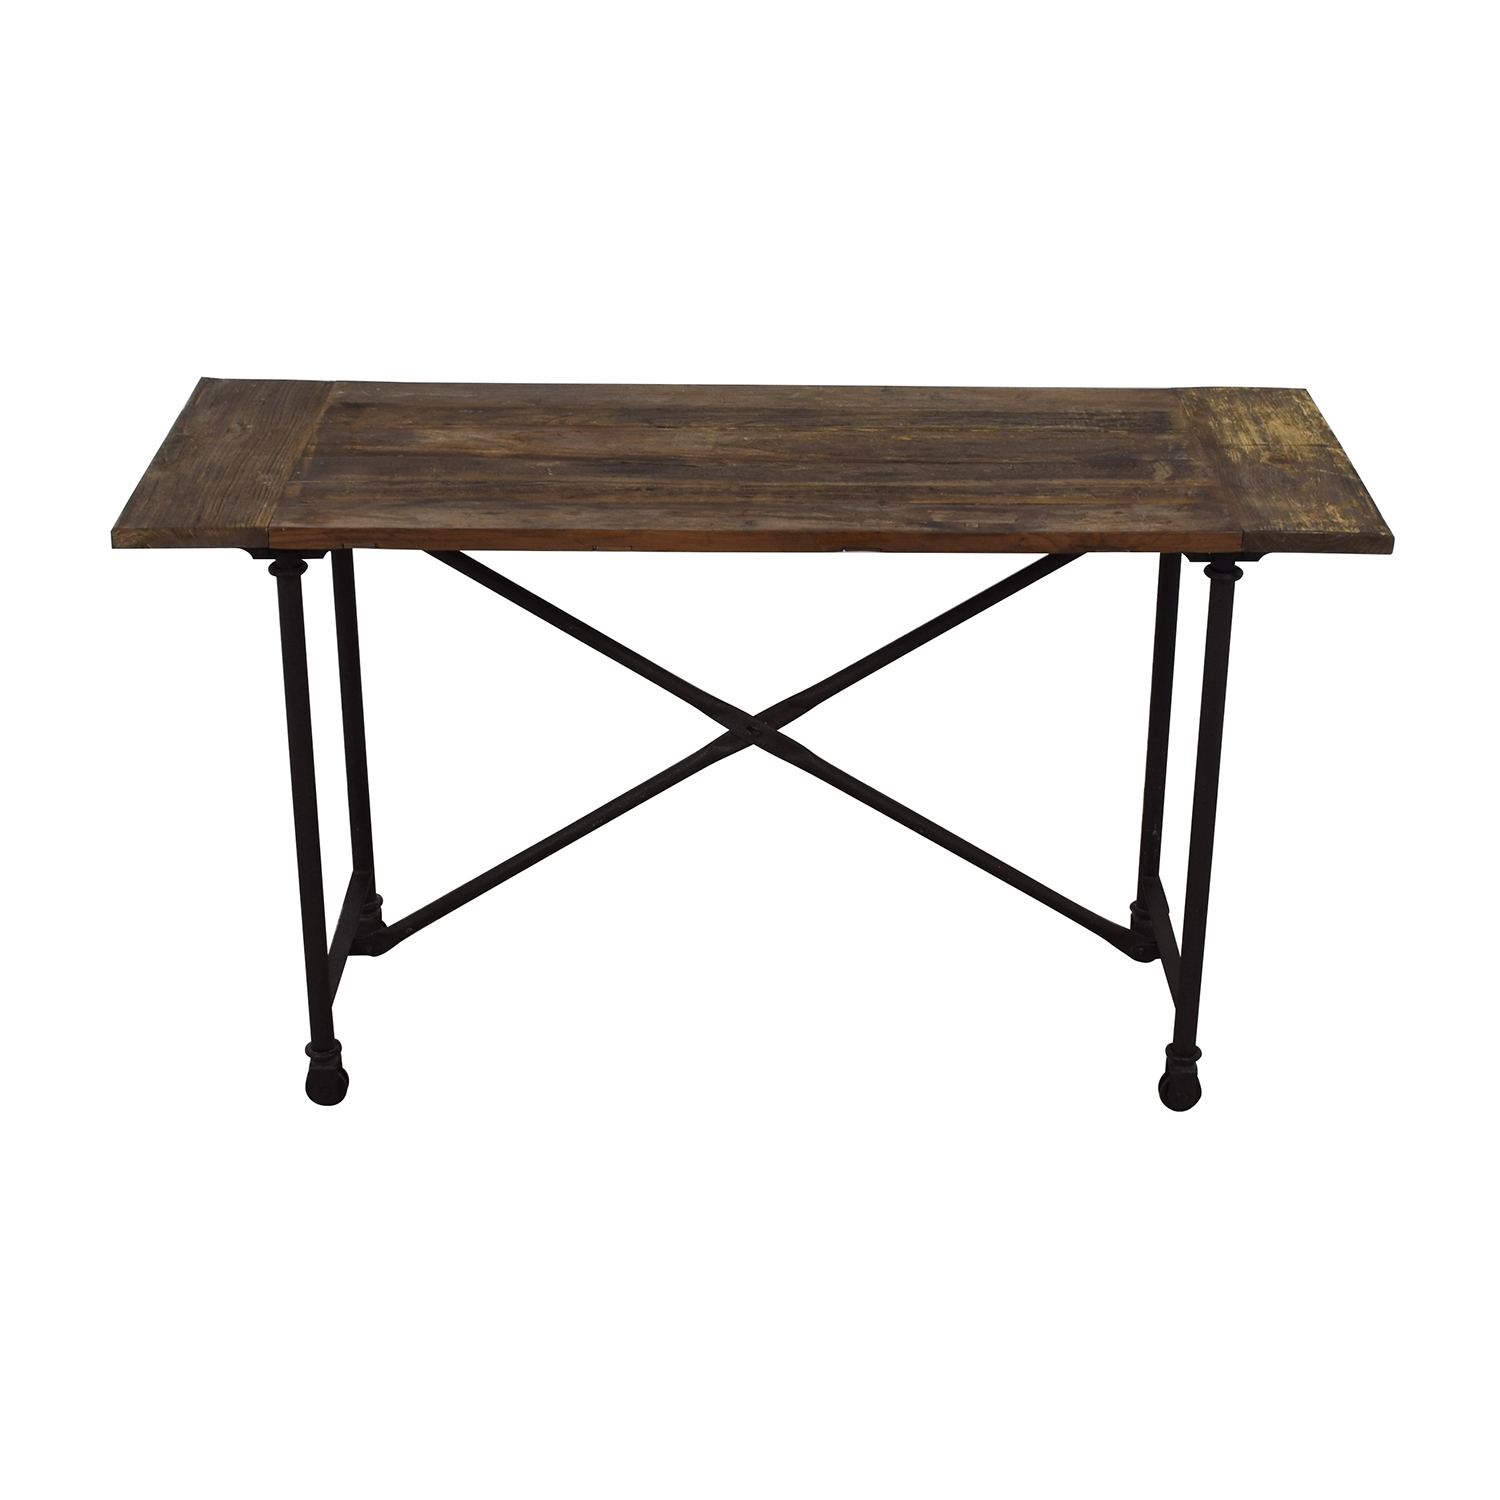 shop Restoration Hardware Restoration Hardware Rustic Flatiron Table online